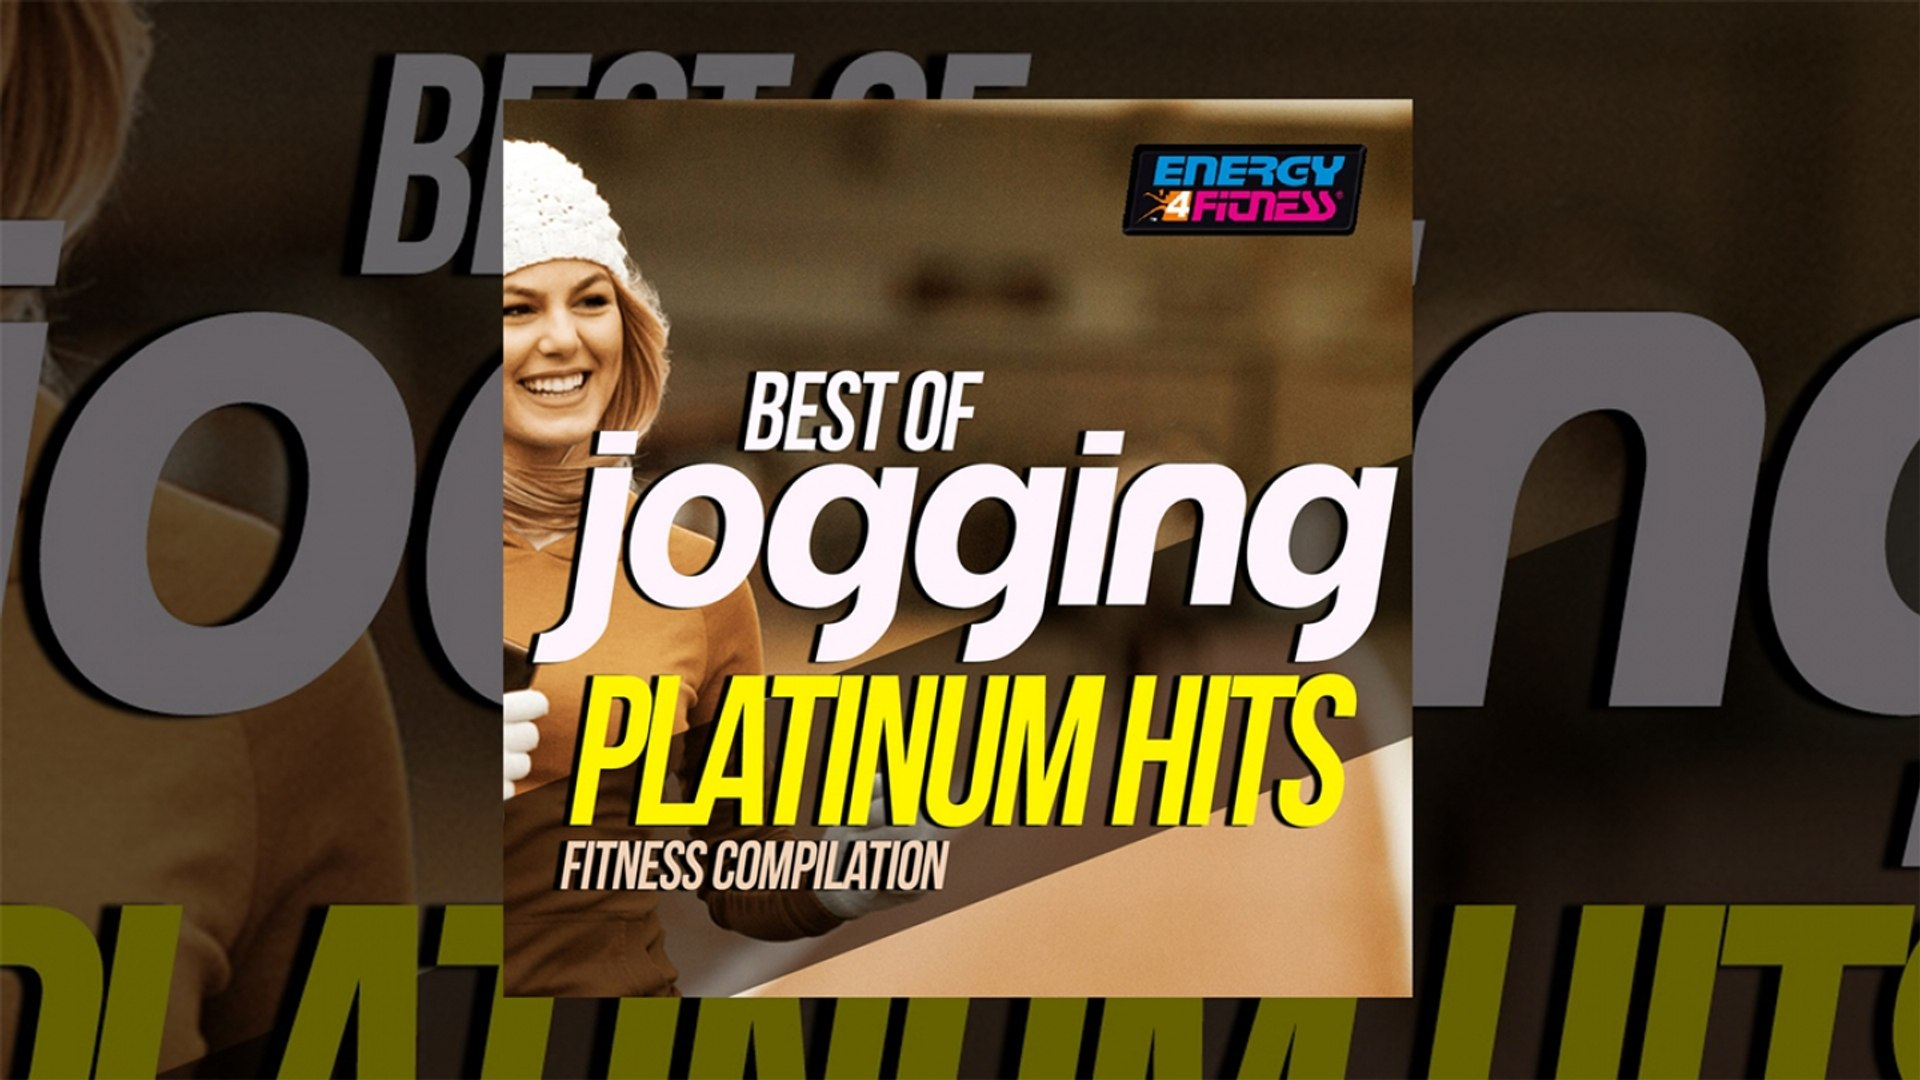 E4F - Best Of Jogging Platinum Hits Fitness Compilation - Fitness & Music 2019